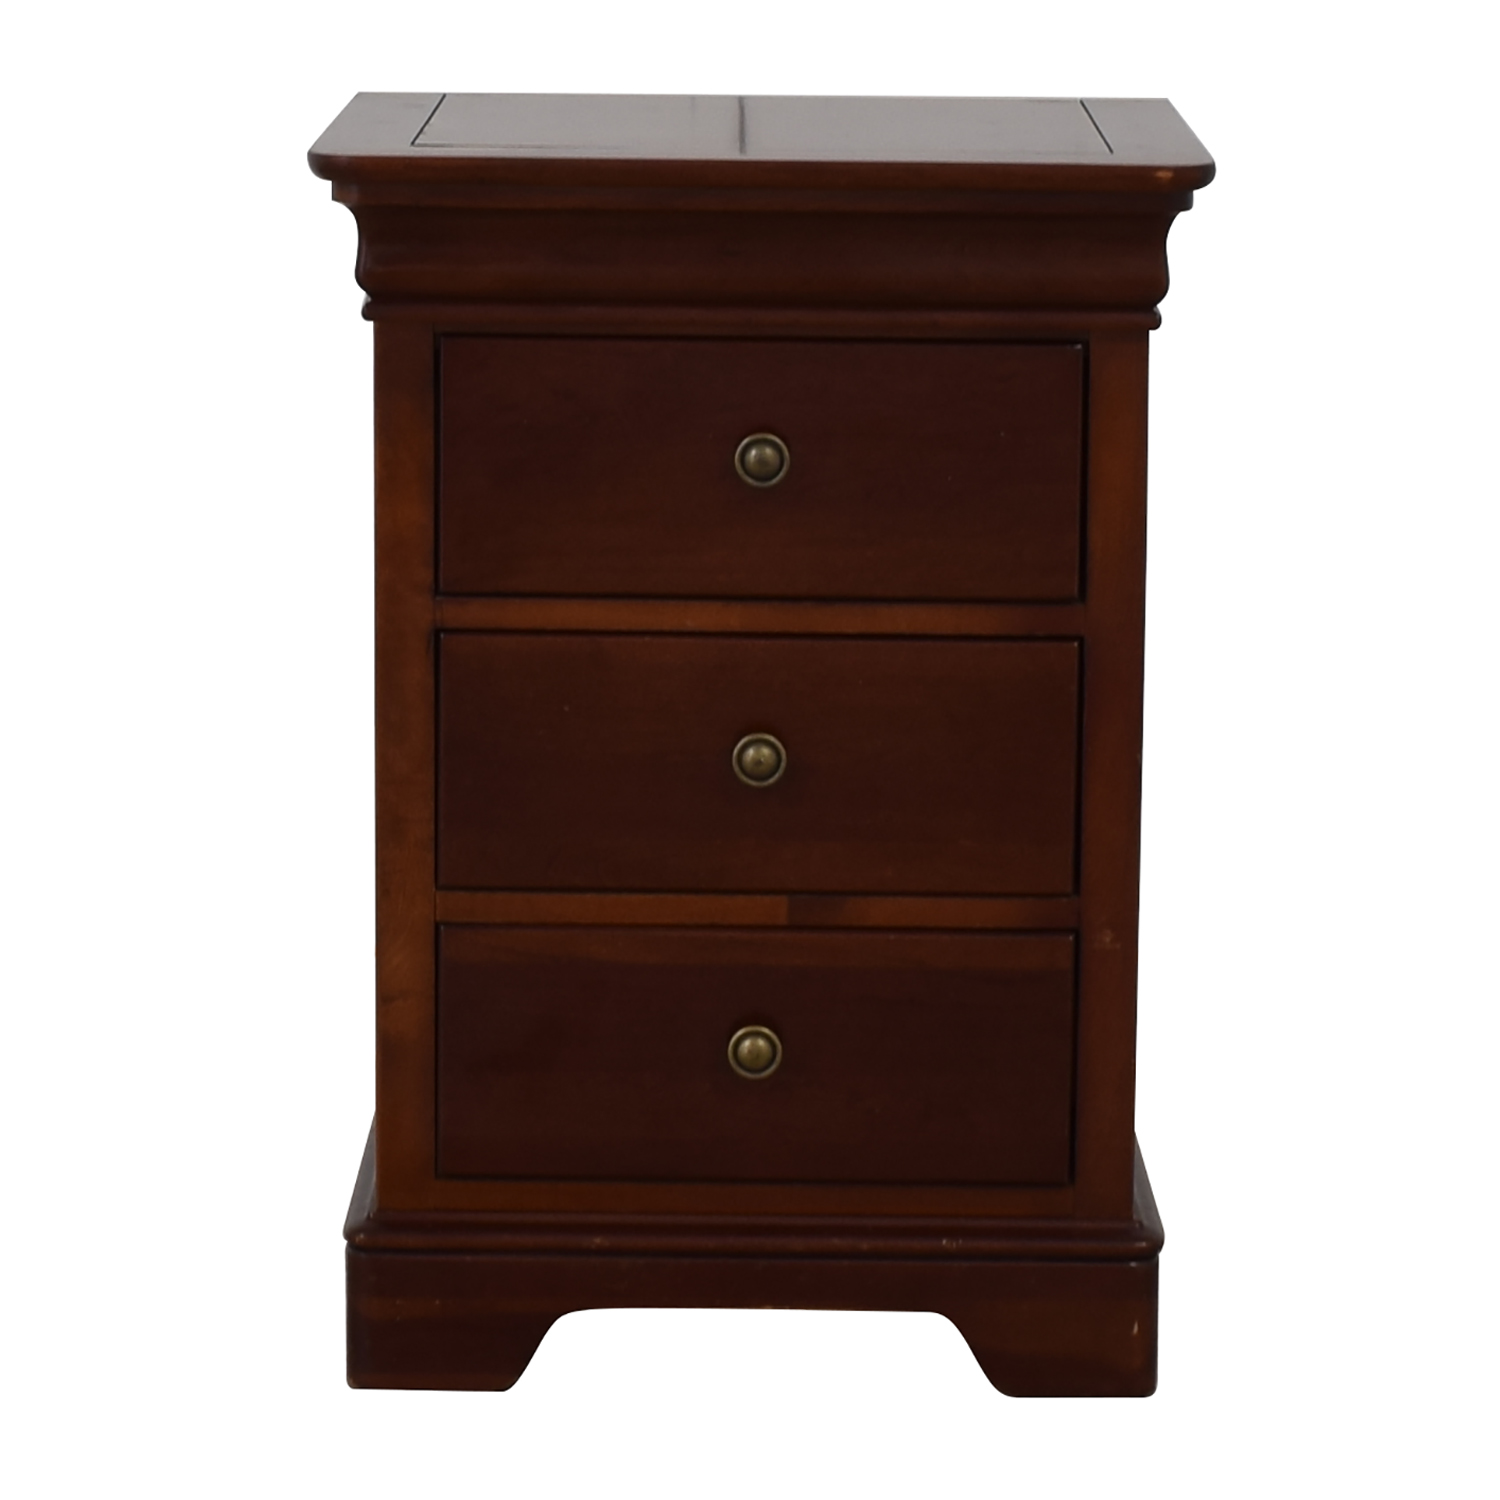 Stanley Furniture Stanley Furniture Three Drawer Nightstand Tables